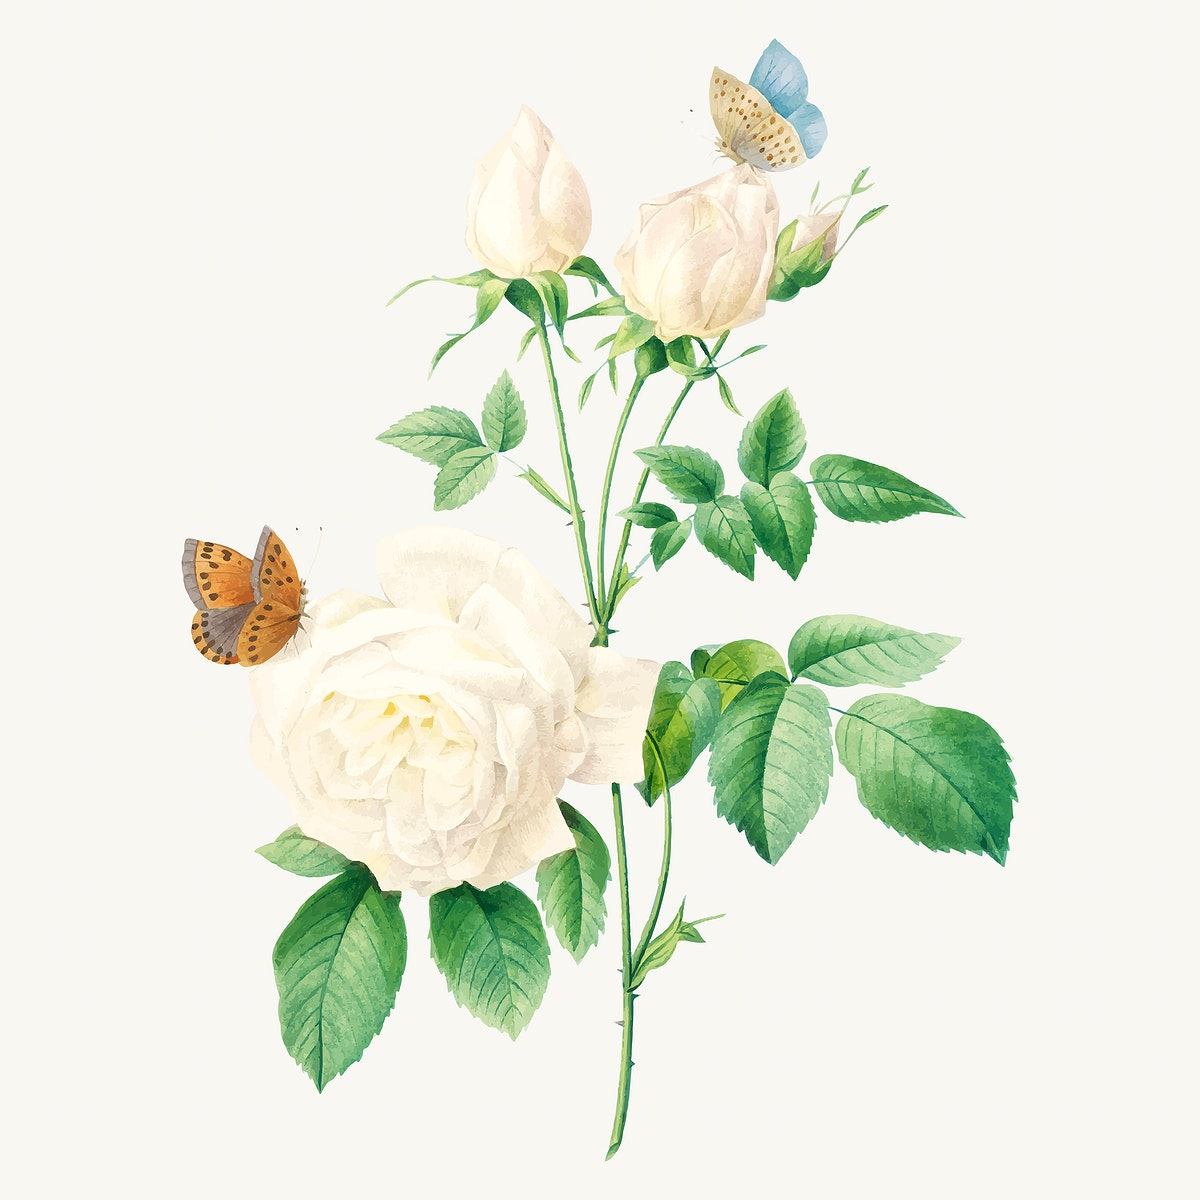 White rose flower botanical vector, remixed from artworks by Pierre-Joseph Redouté